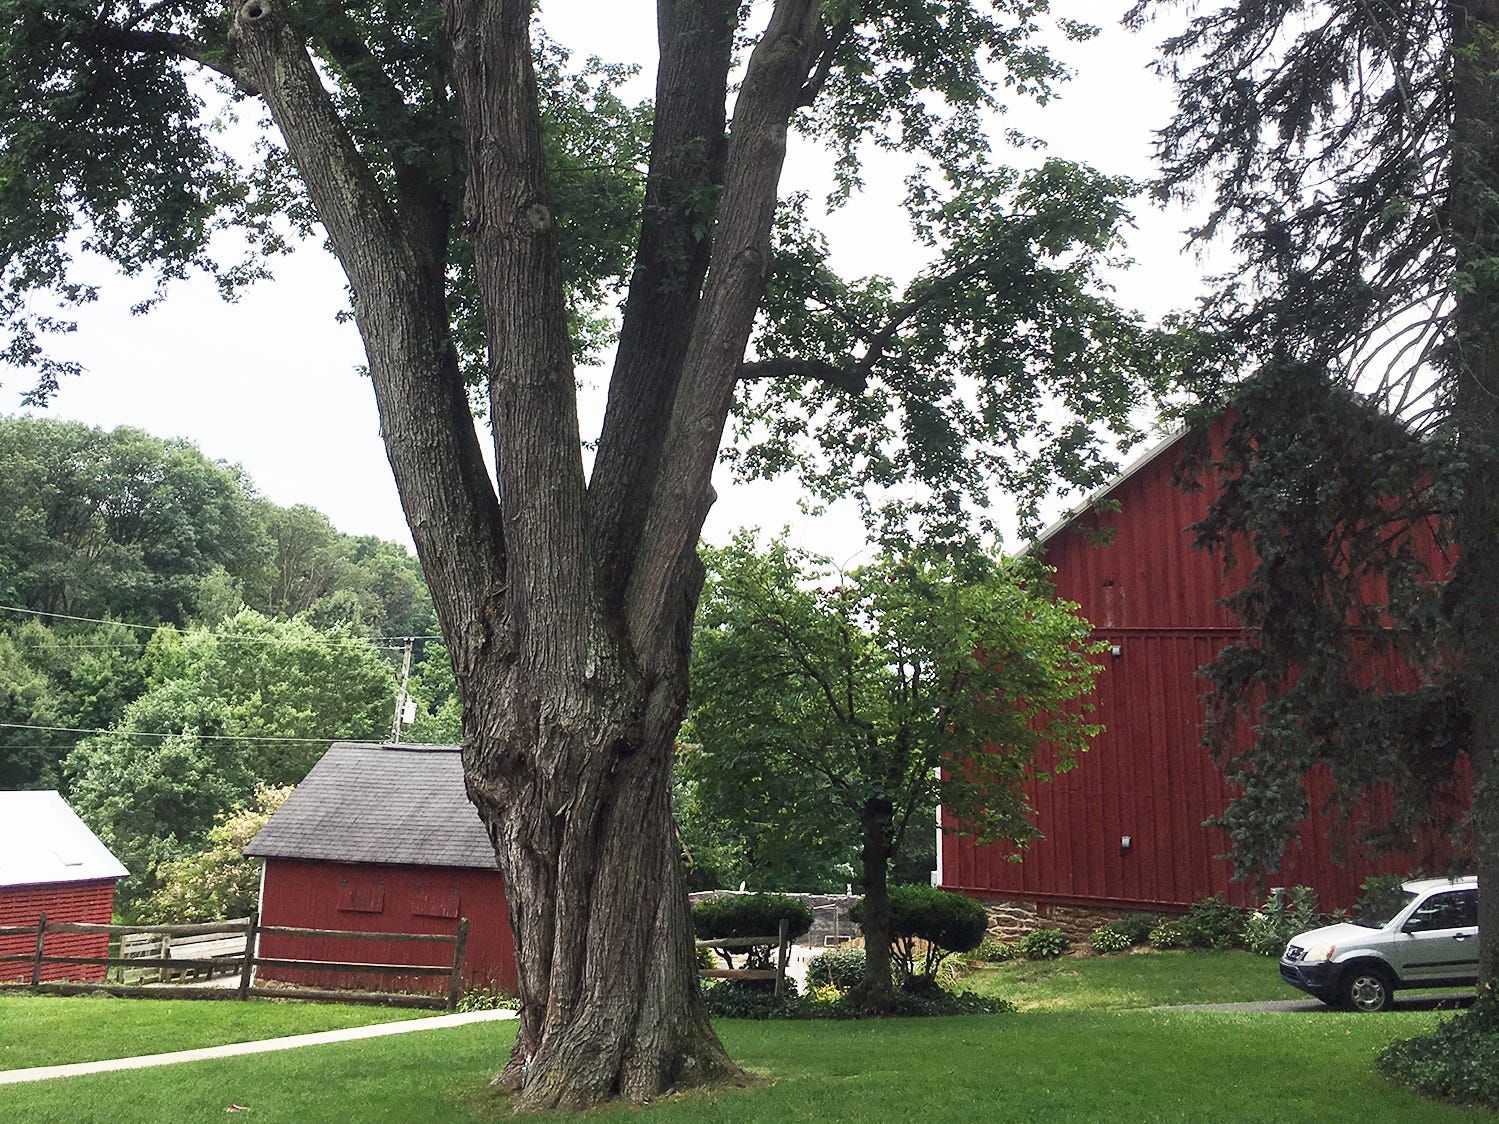 This is the 50-foot Silver Maple tree before it became a fairy house at the Teaching Museum for the Fiber Arts & Textiles near Winterstown.